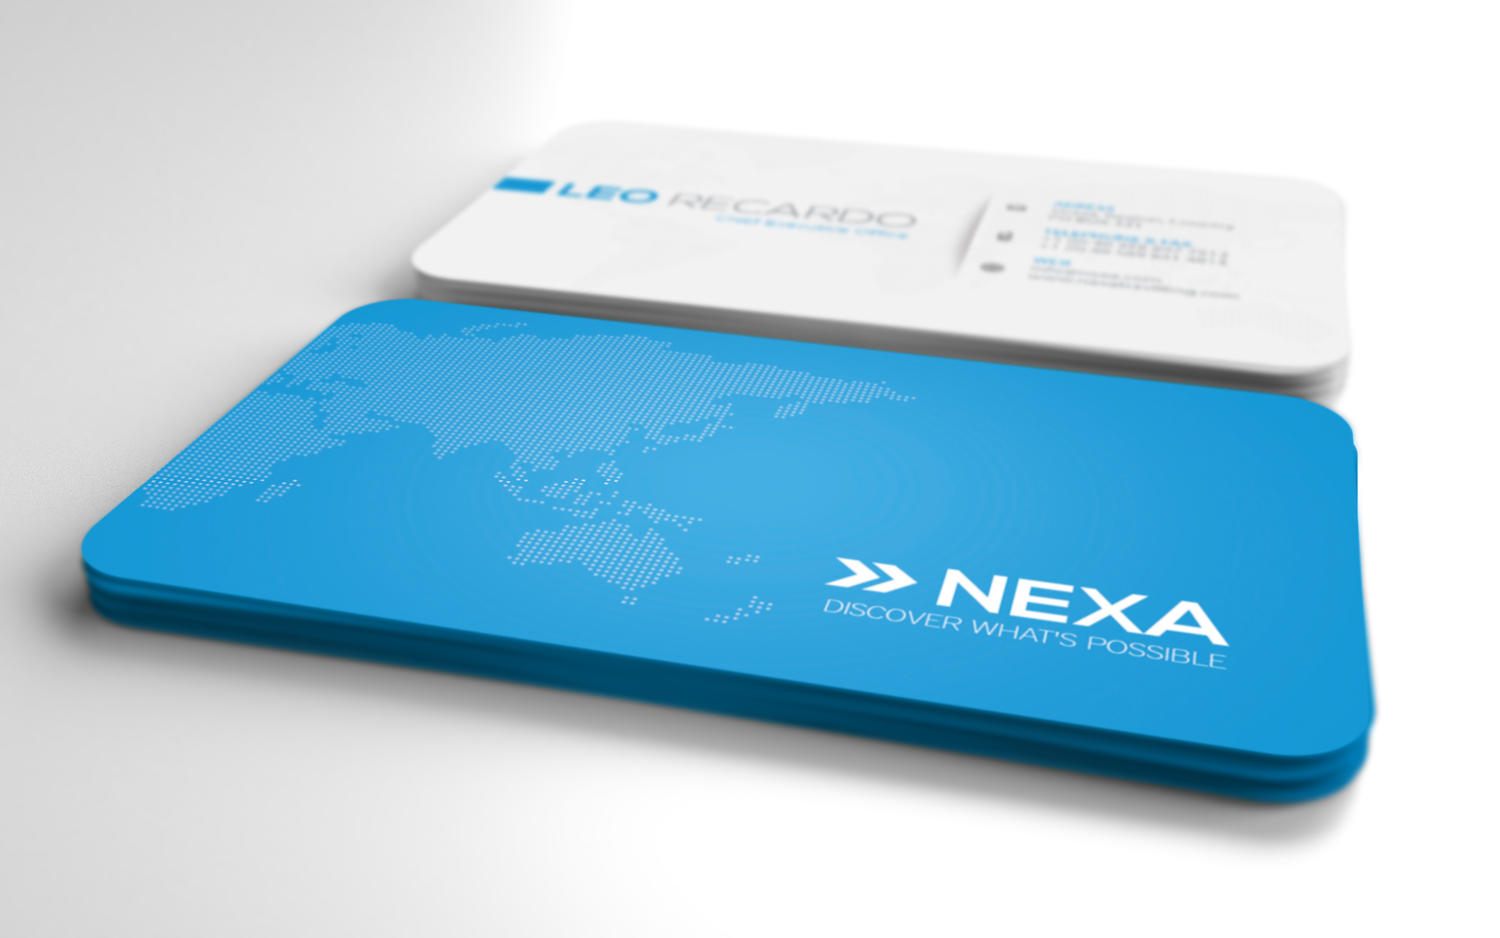 Professional Business Card Design by Unicogfx - 1885